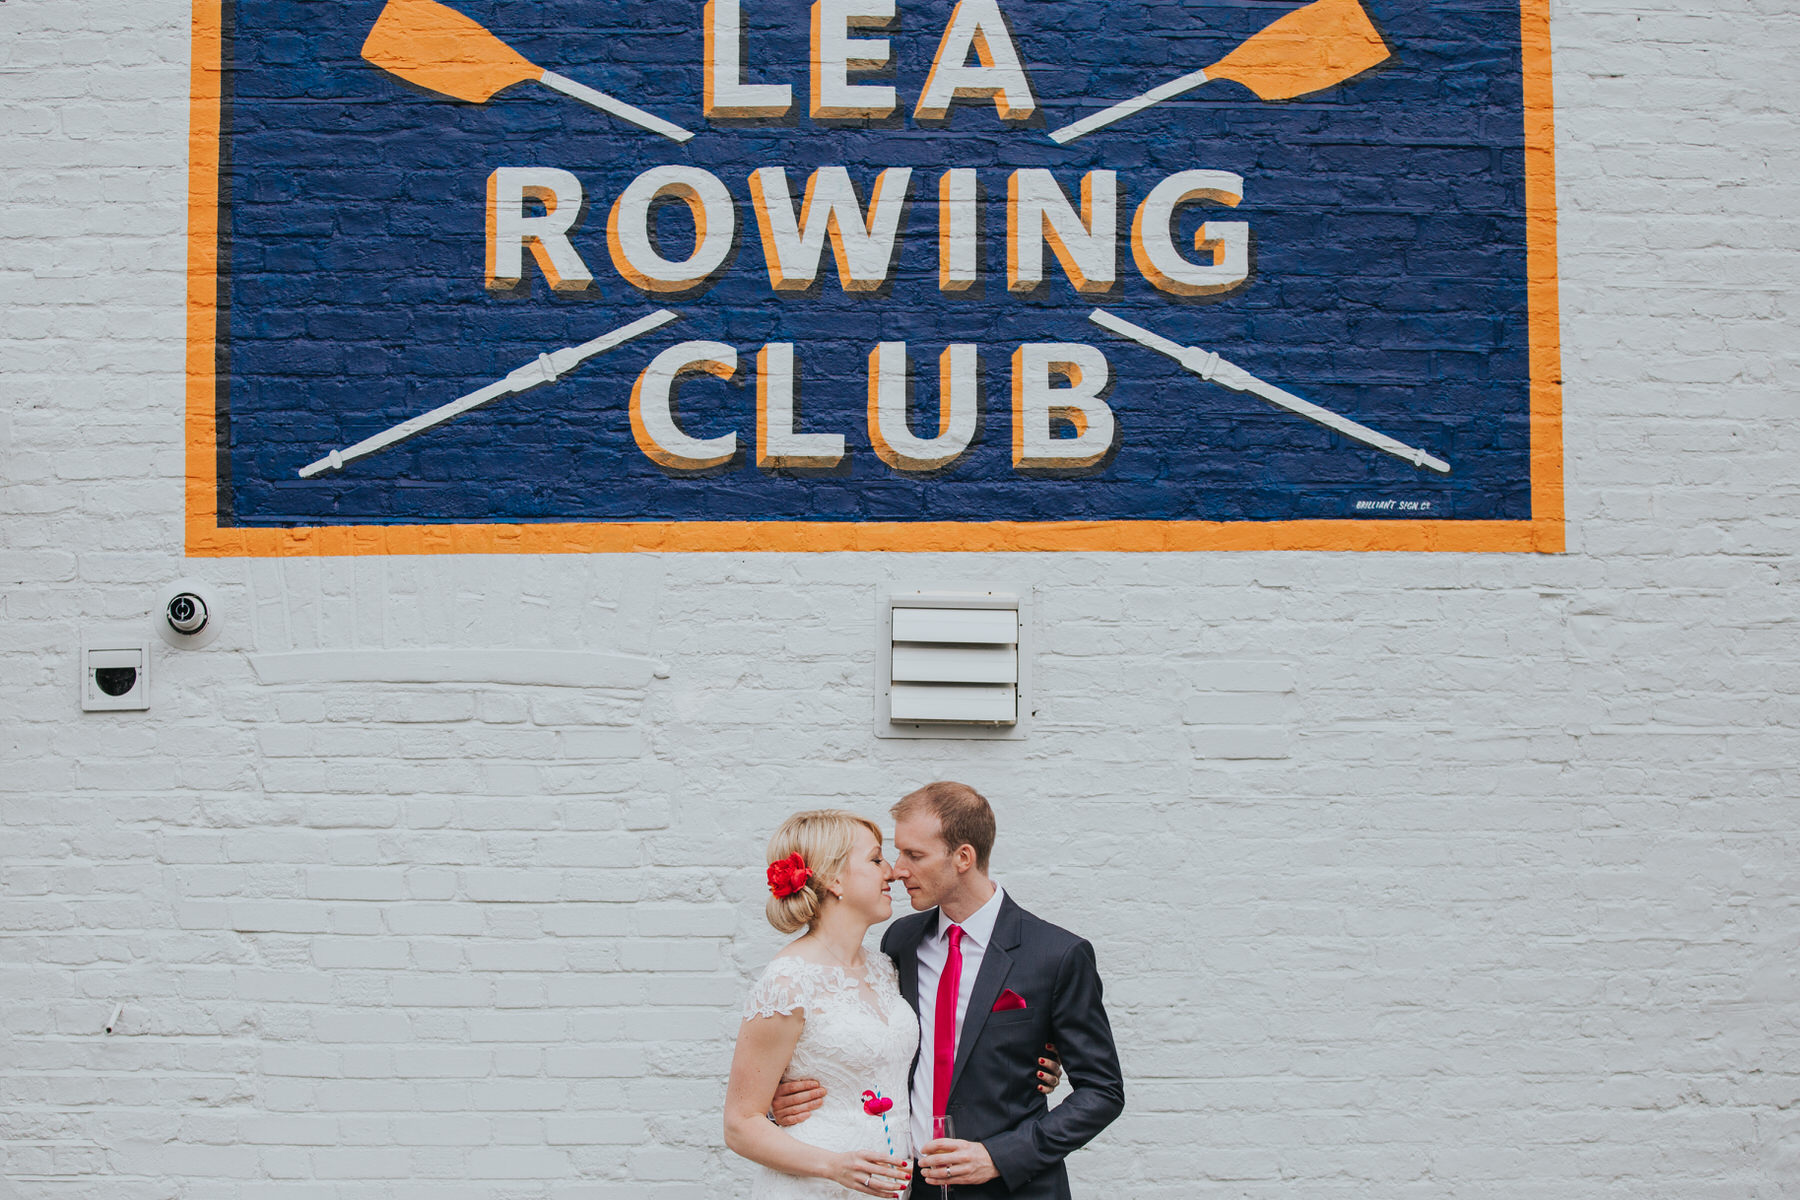 Lea Rowing Club wedding portraits .jpg